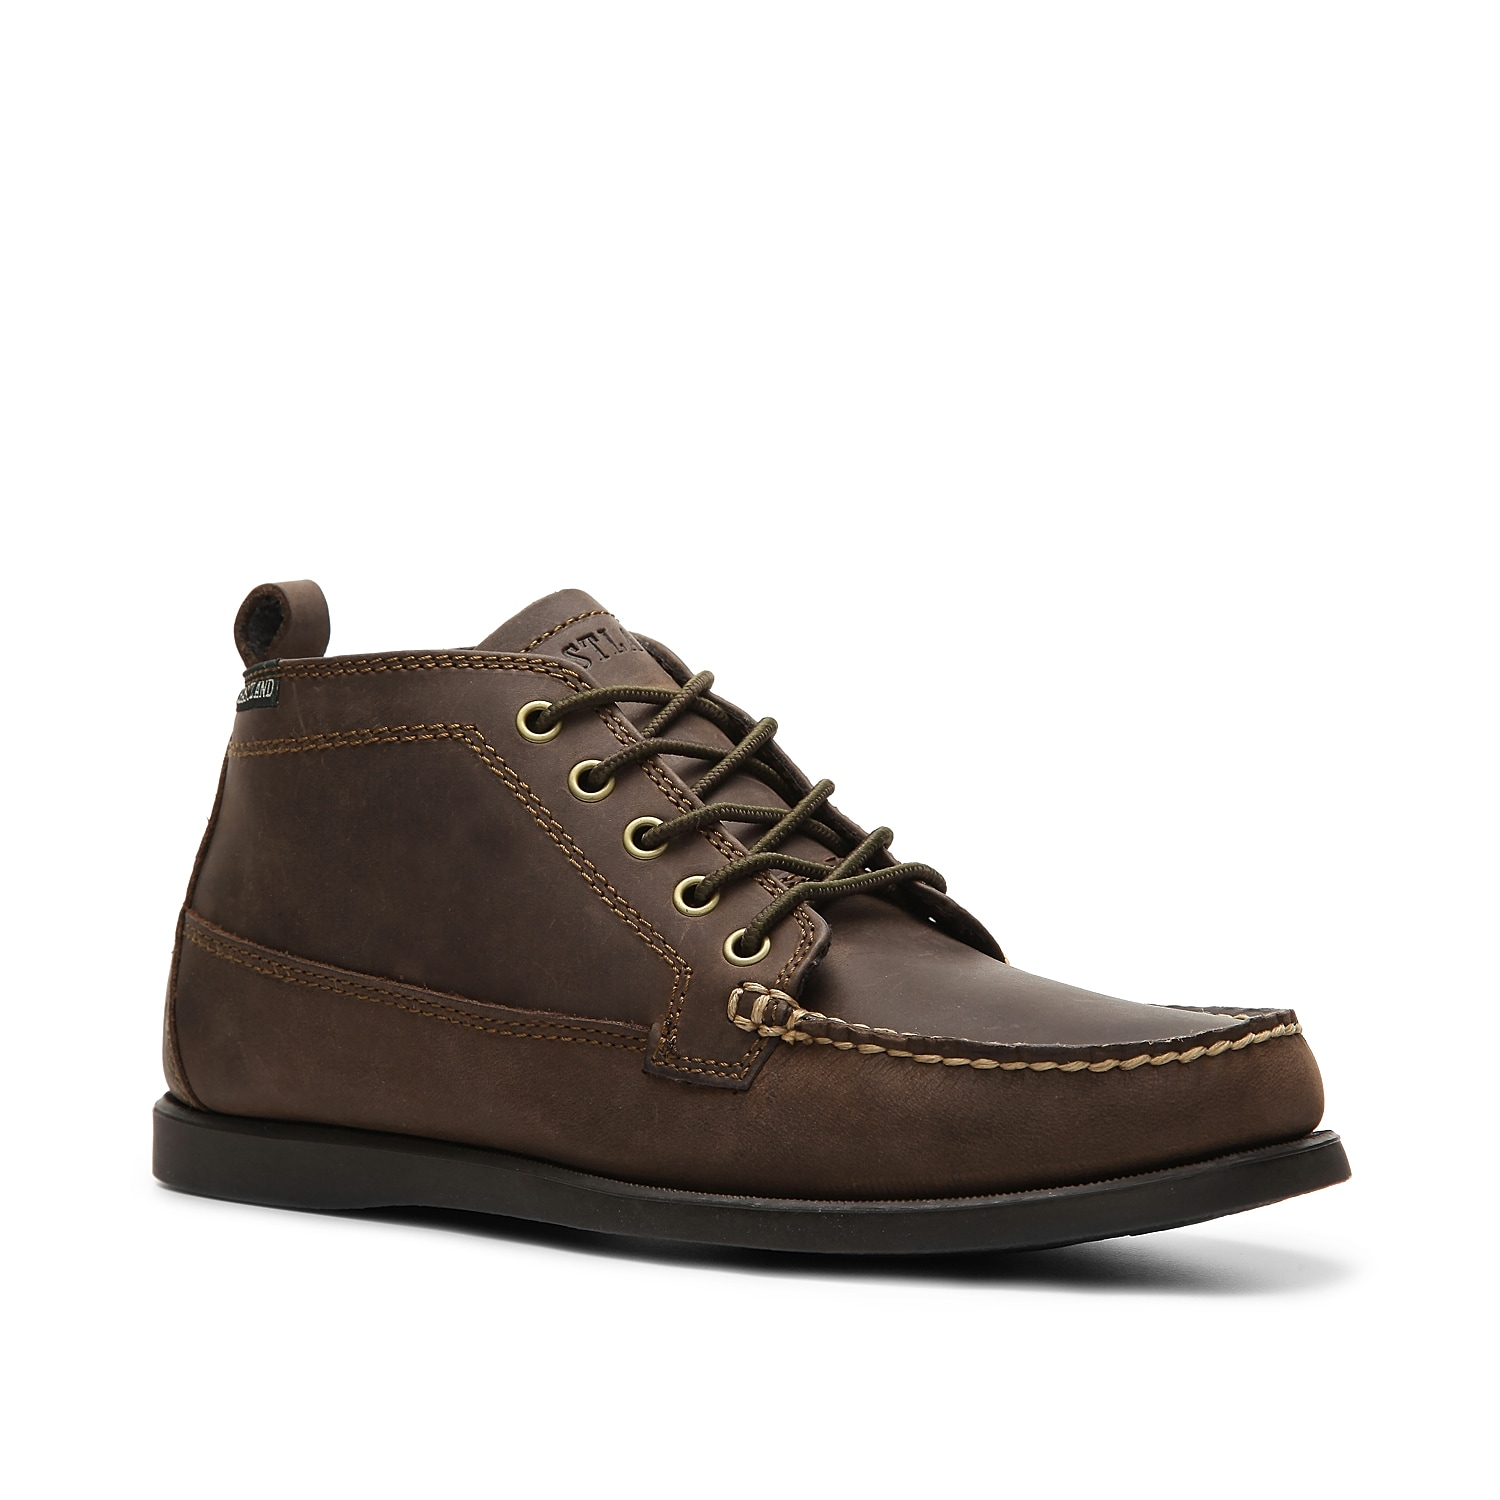 A traditional look of a camp moccasin combined with the styling of the chukka boot makes the Seneca from Eastland one great choice! Lace up this leather chukka boot with jeans or khakis for a classic look.